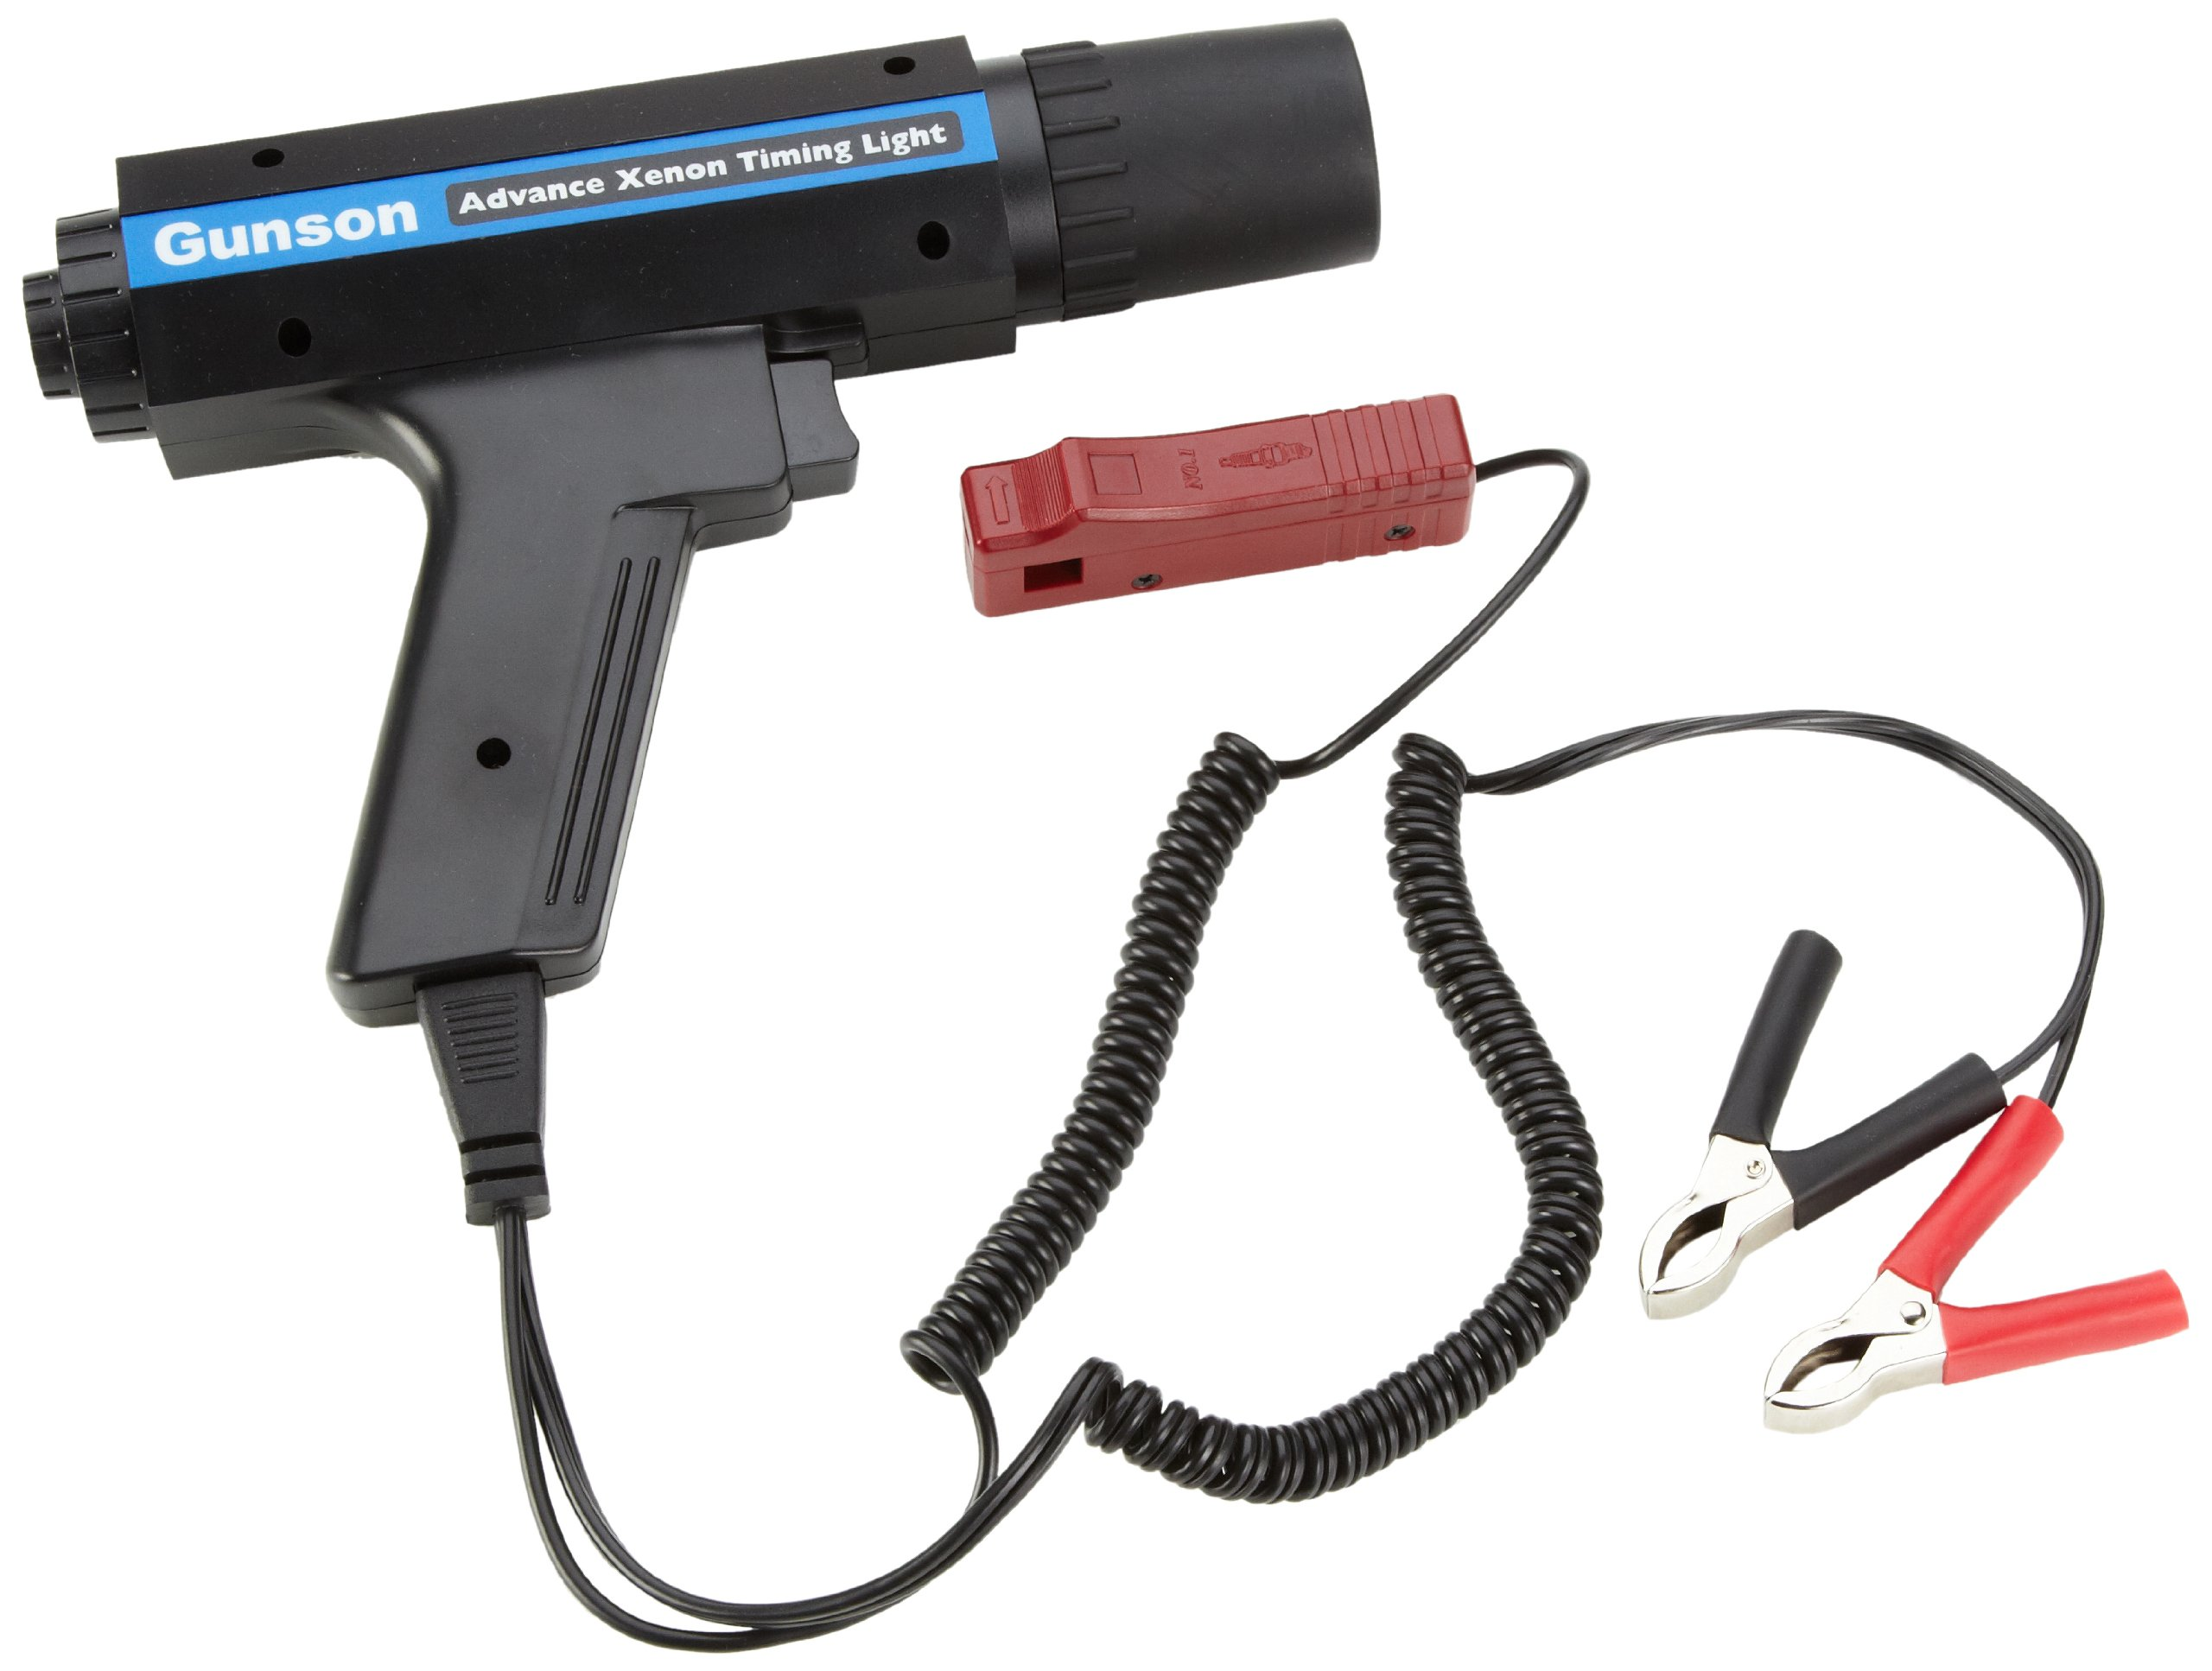 Gunson - 77008 Timing Light With Advance Feature